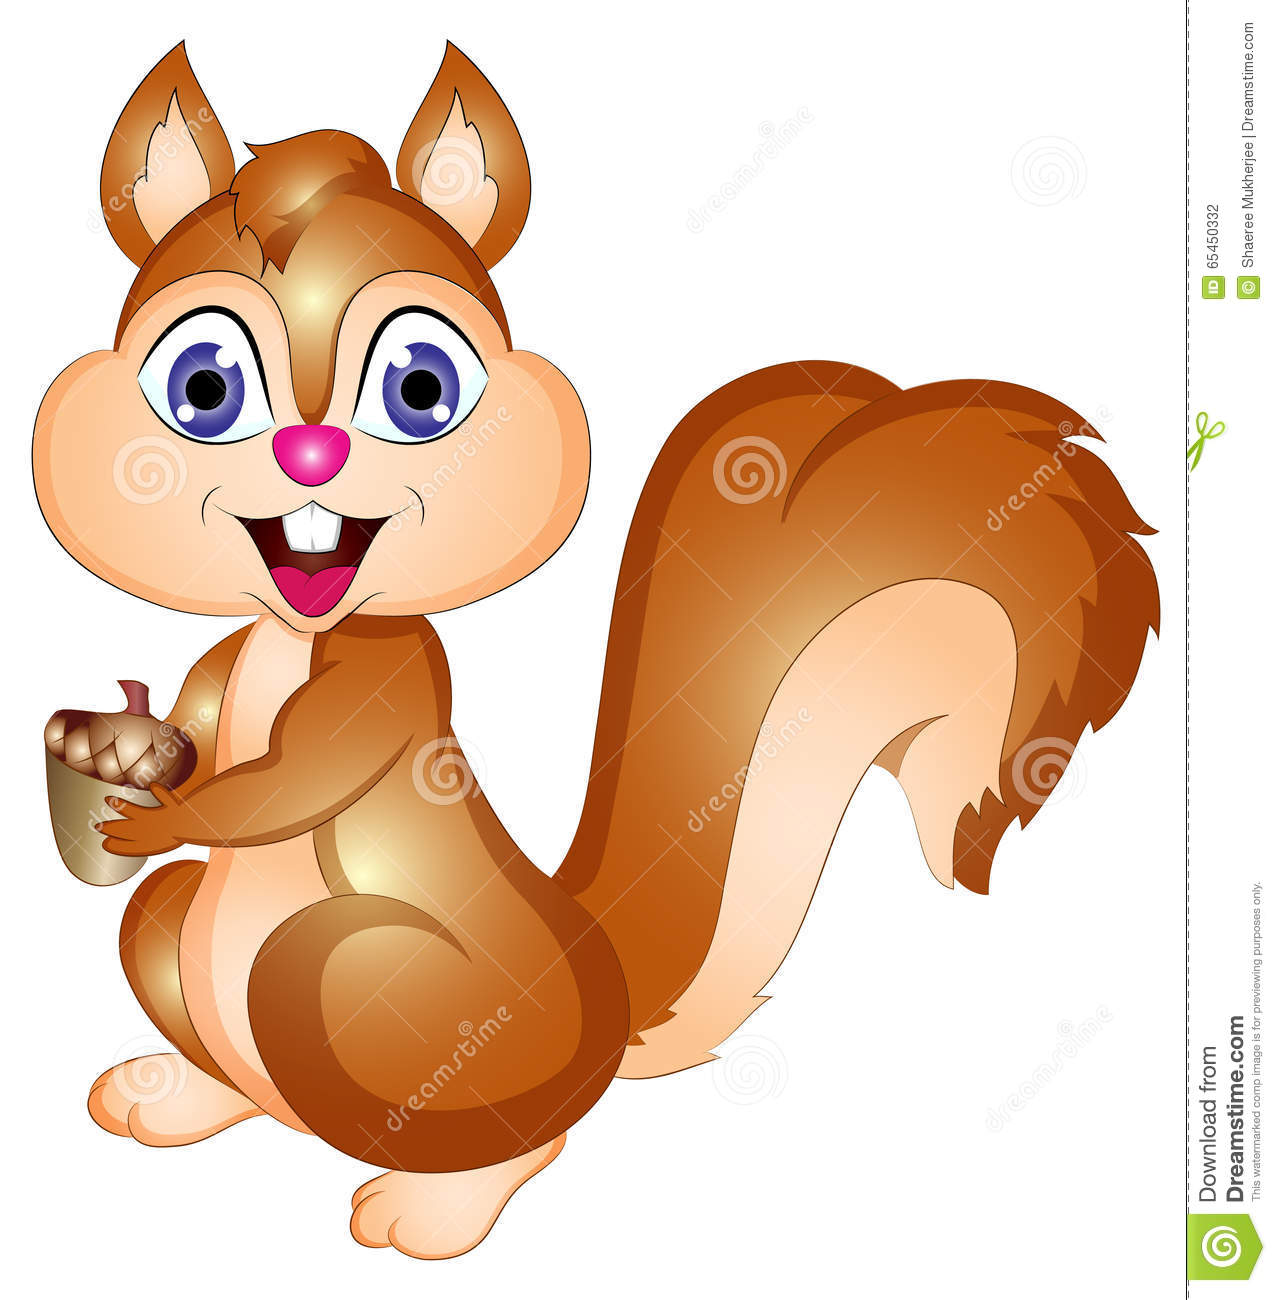 Cached Cute cartoon squirrel pictures